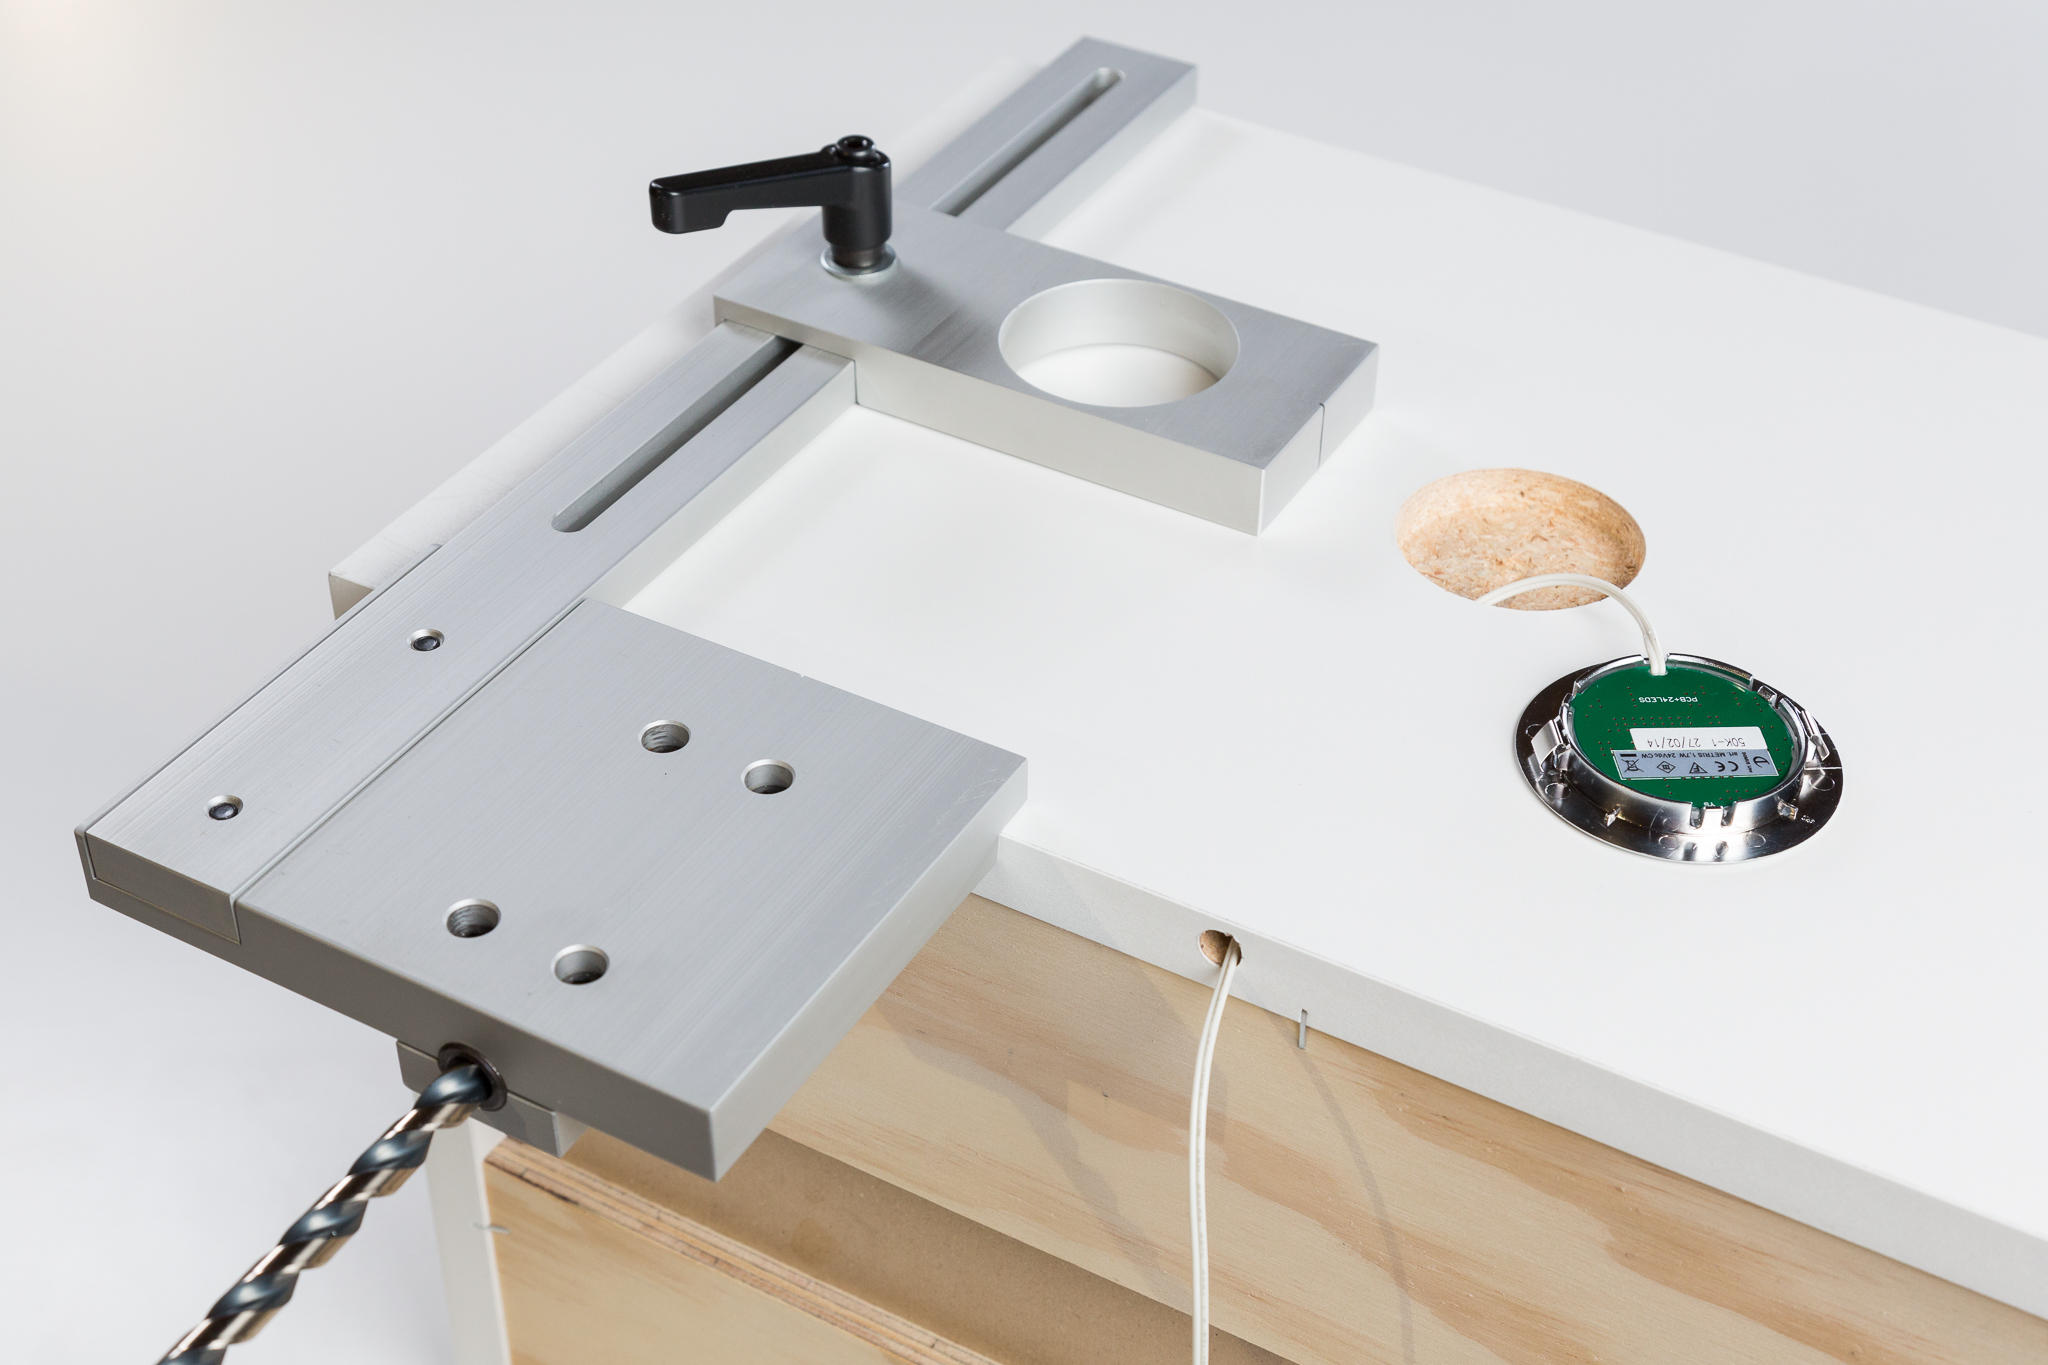 Tp plj cabinet light puck installation jig microfence tp plj cabinet light puck installation jig aloadofball Image collections